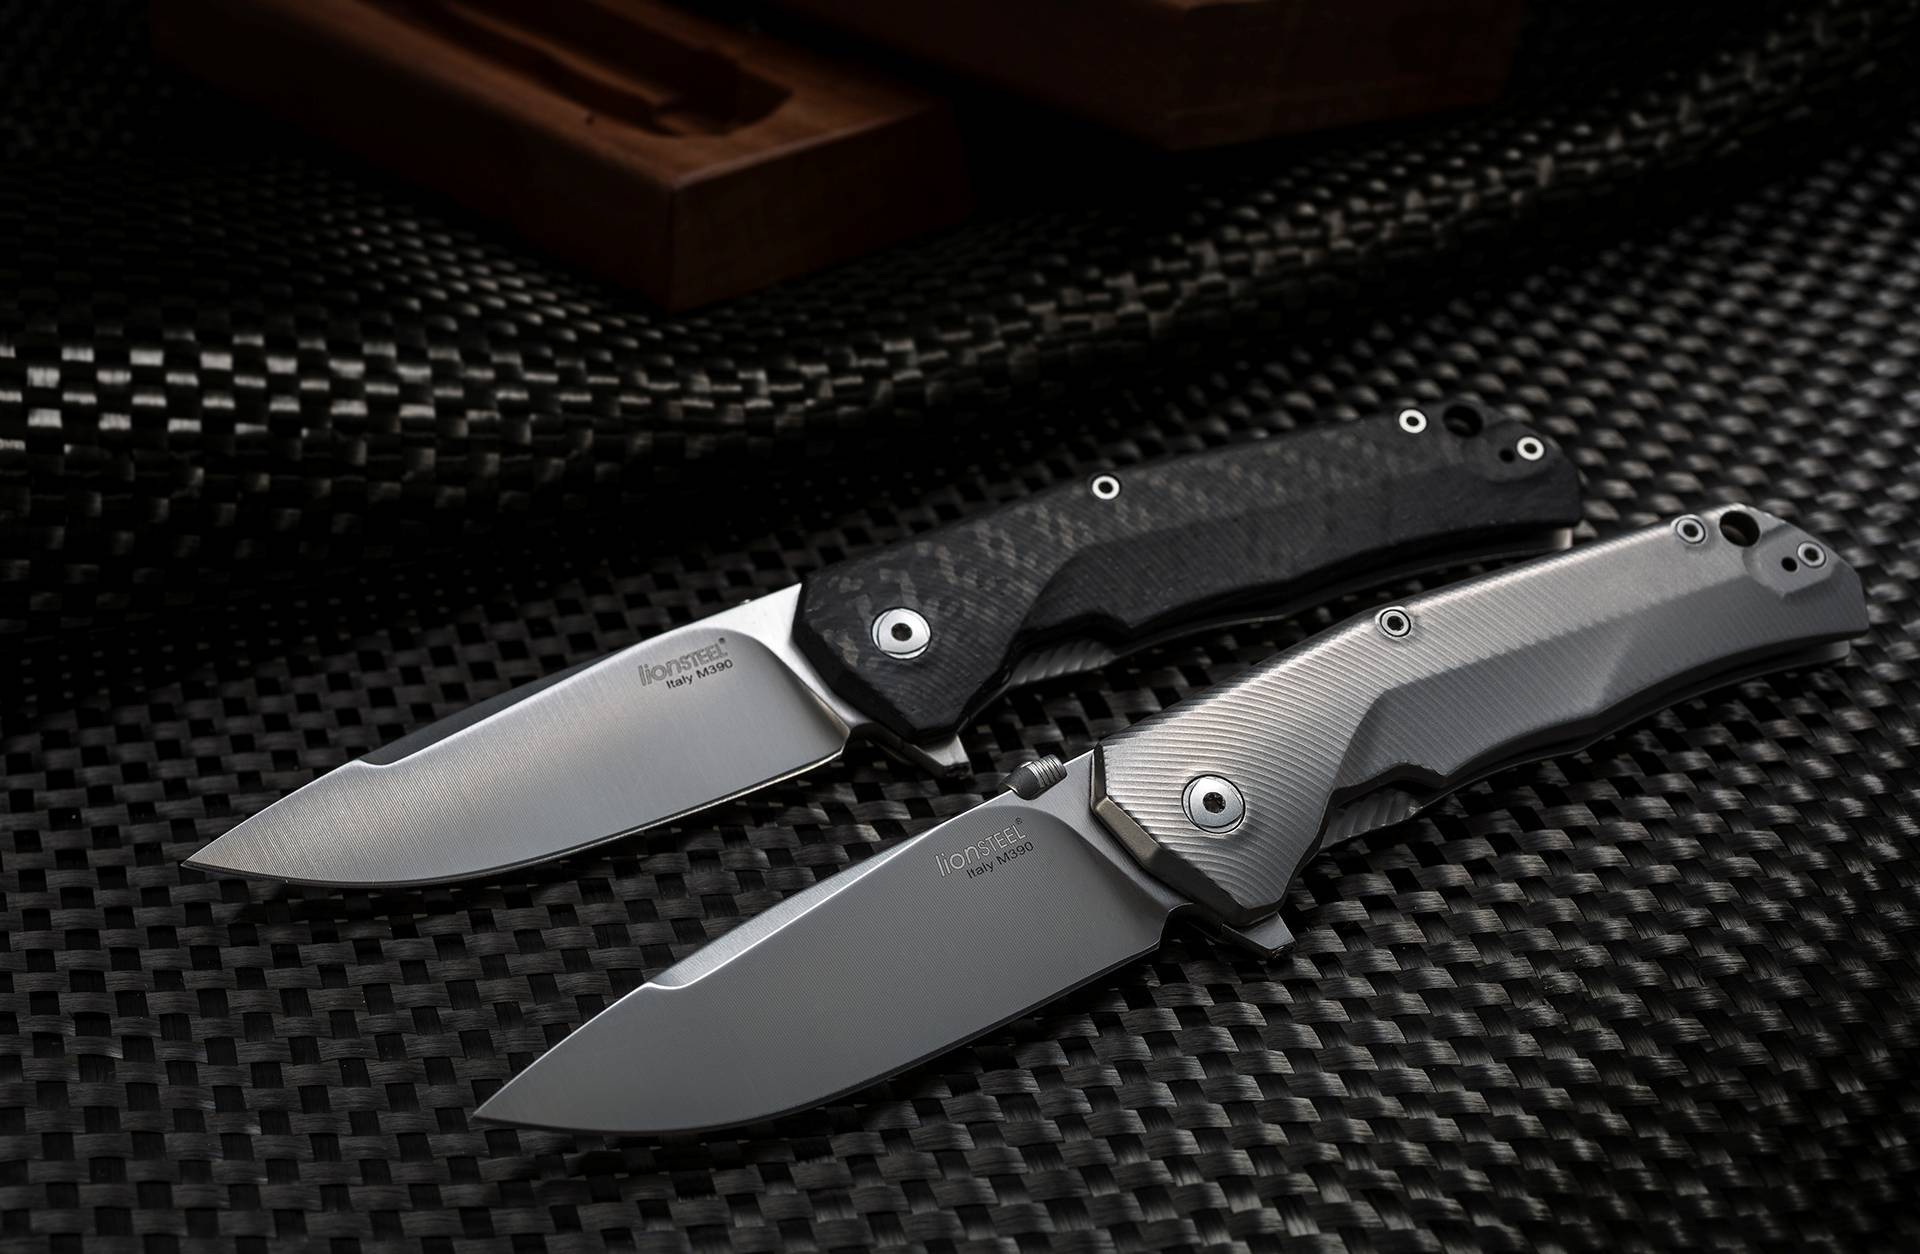 Фото 2 - Нож складной T.R.E. - Three Rapid Exchange (IKBS® Flipper), Carbon Fiber/Matte Titanium Handle от Lion Steel